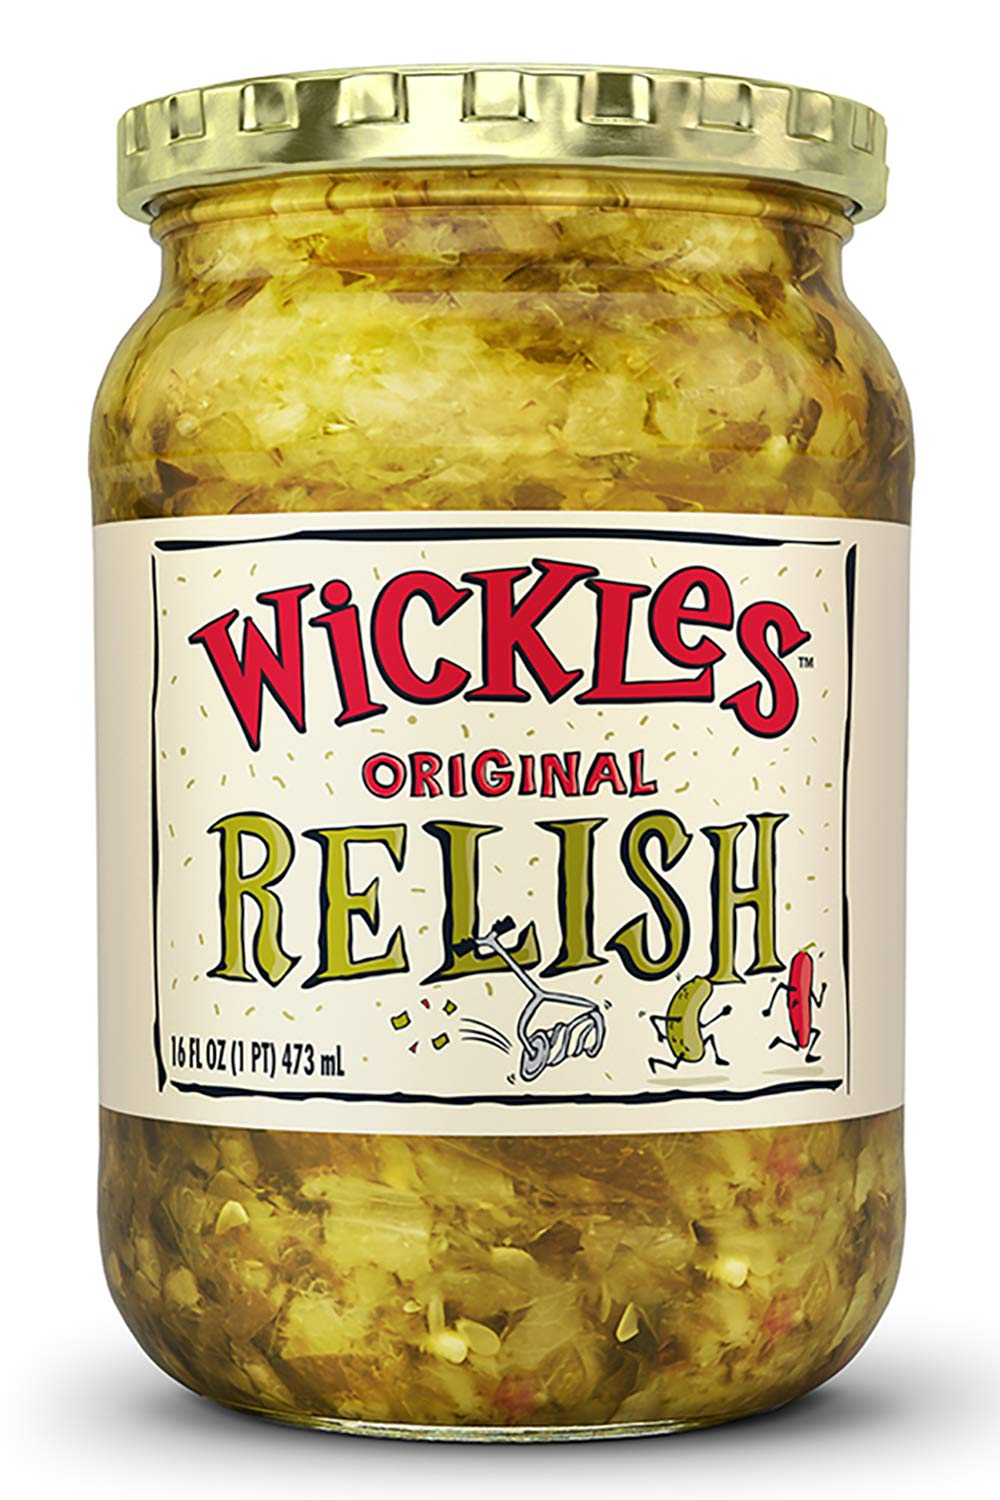 Wickles Original Relish, 16-ounce Jars (Pack of 12) by Wickles